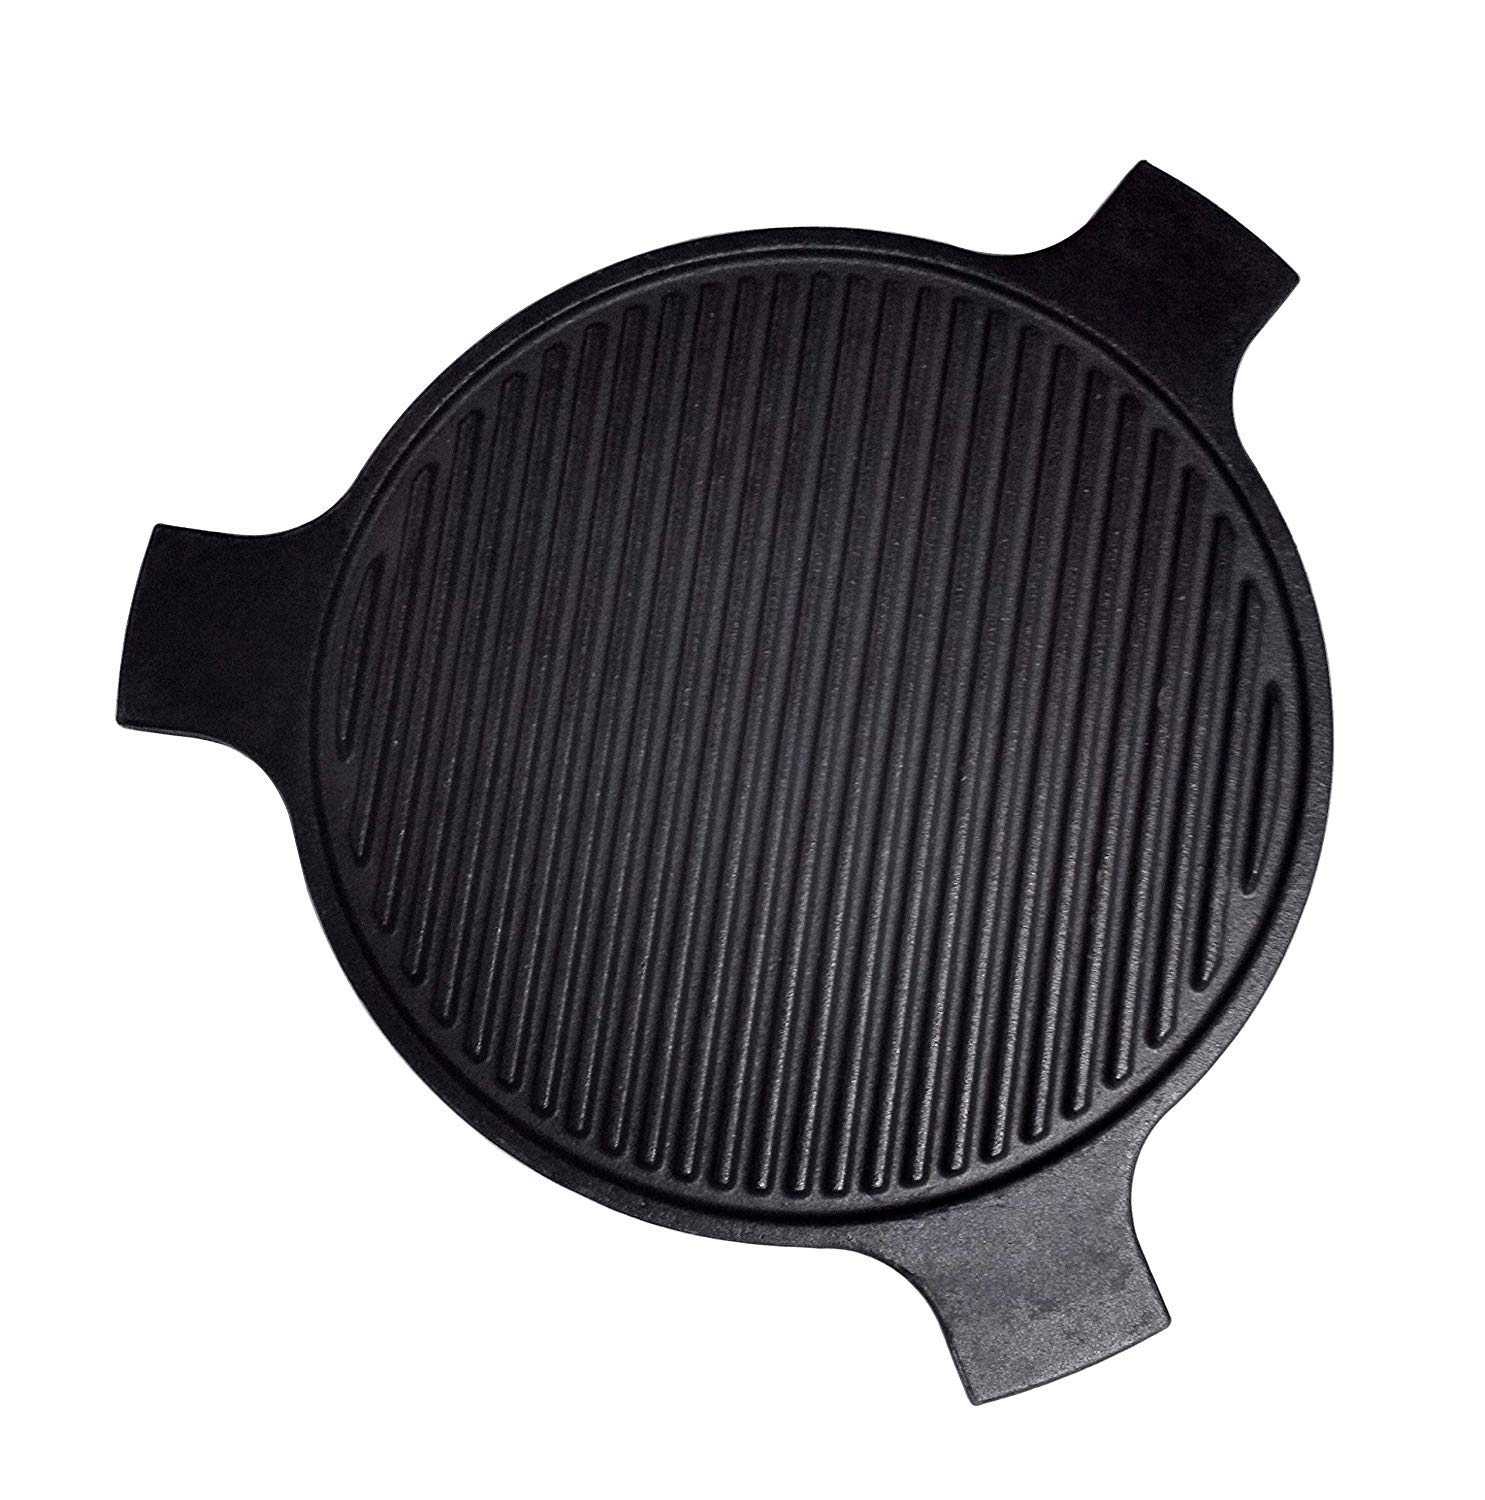 Outspark Cast Iron Plate Setter - Fits LARGE Big Green Egg